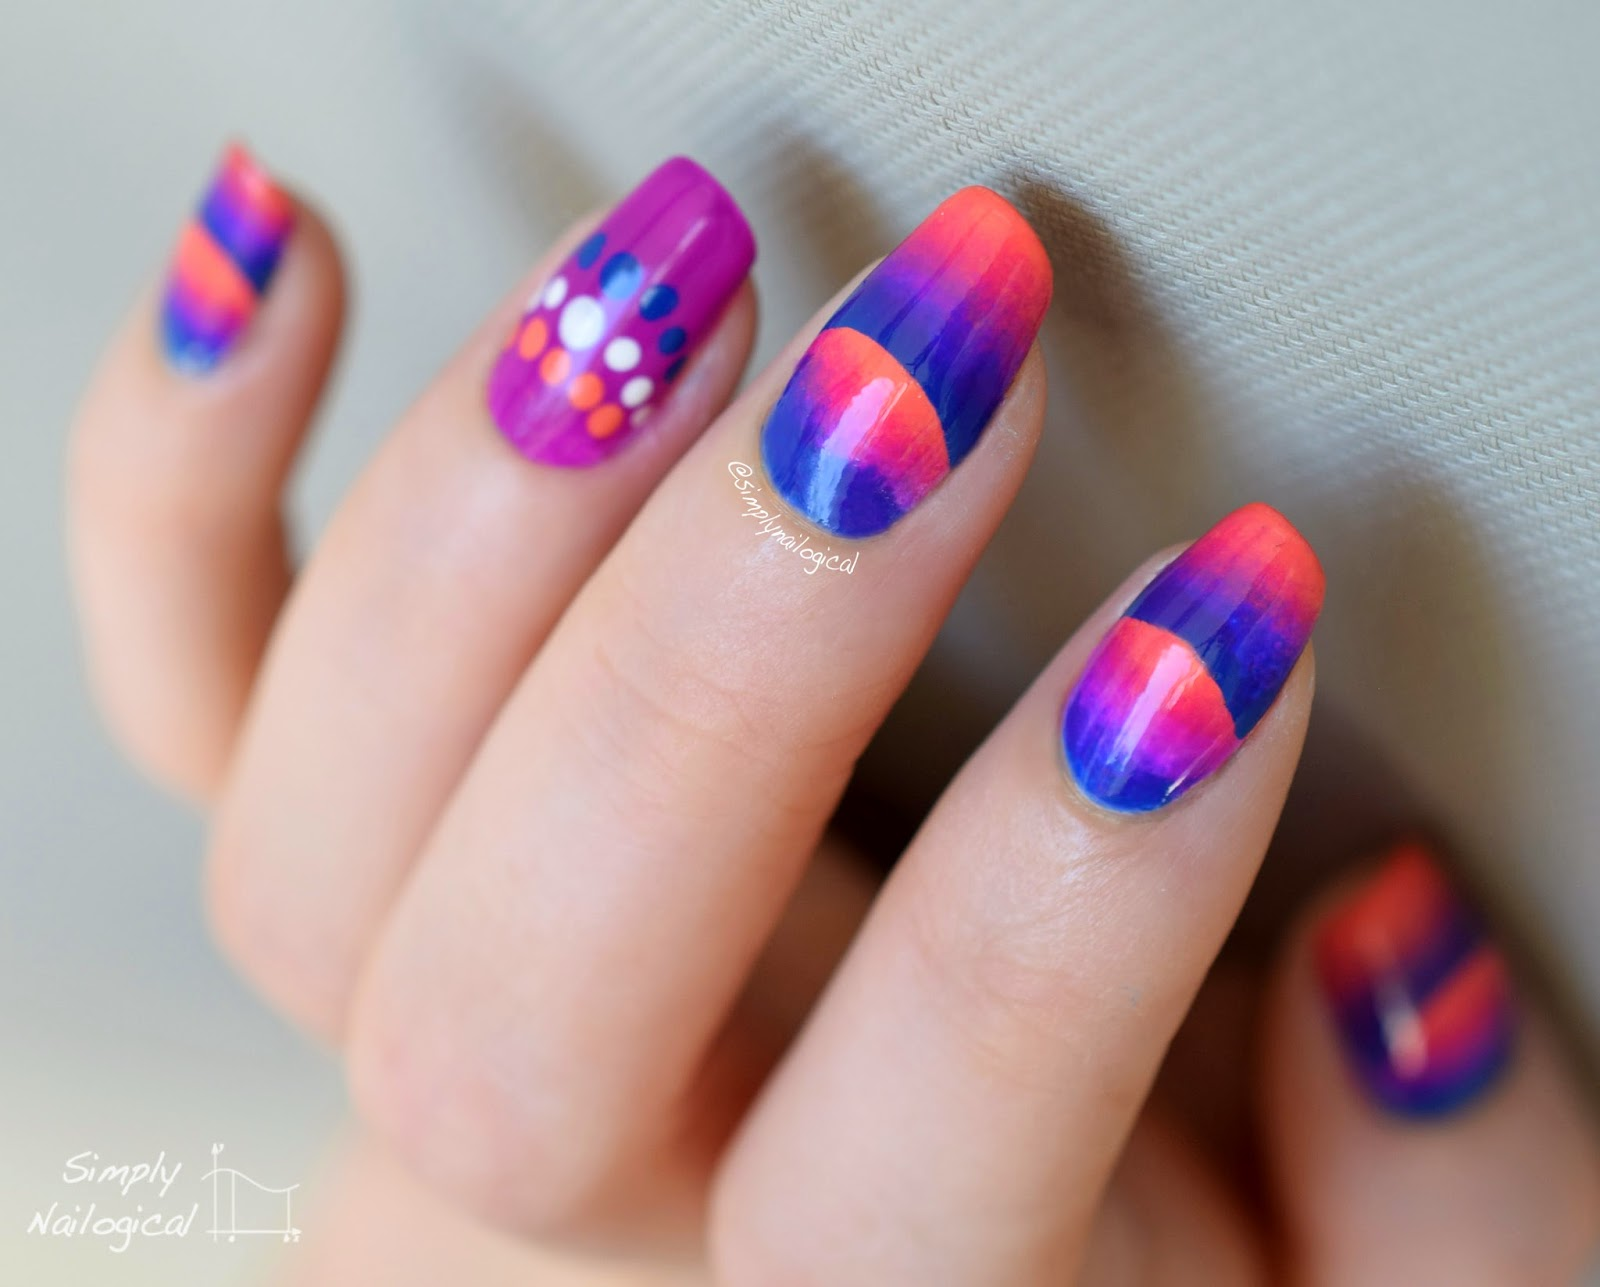 Dorable Simply Nail Art Embellishment - Nail Art Design Ideas ...